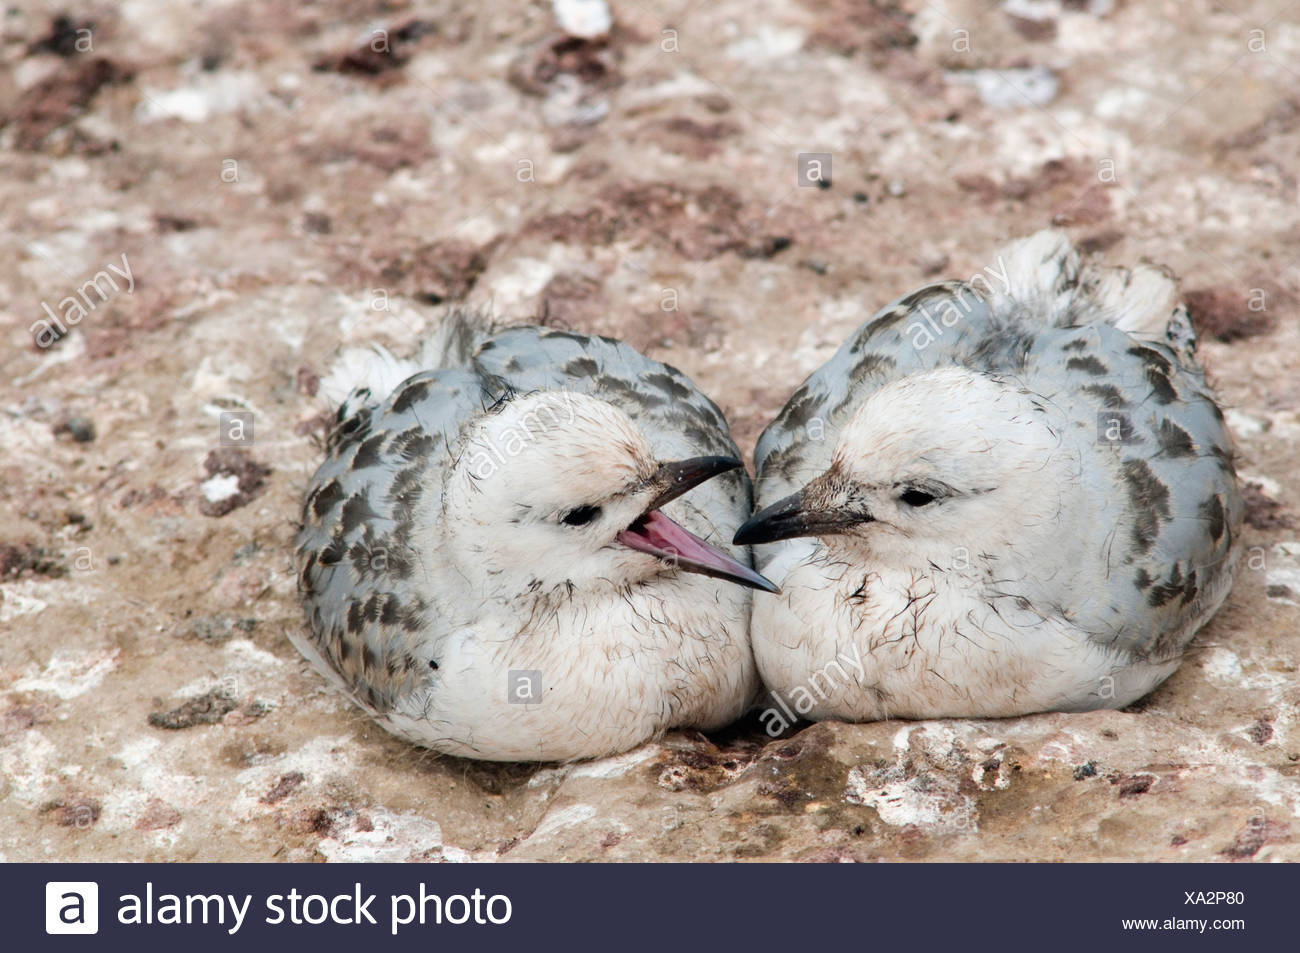 Young Red-billed Gulls (Larus novaehollandiae), Shag Point, South Island, New Zealand - Stock Image